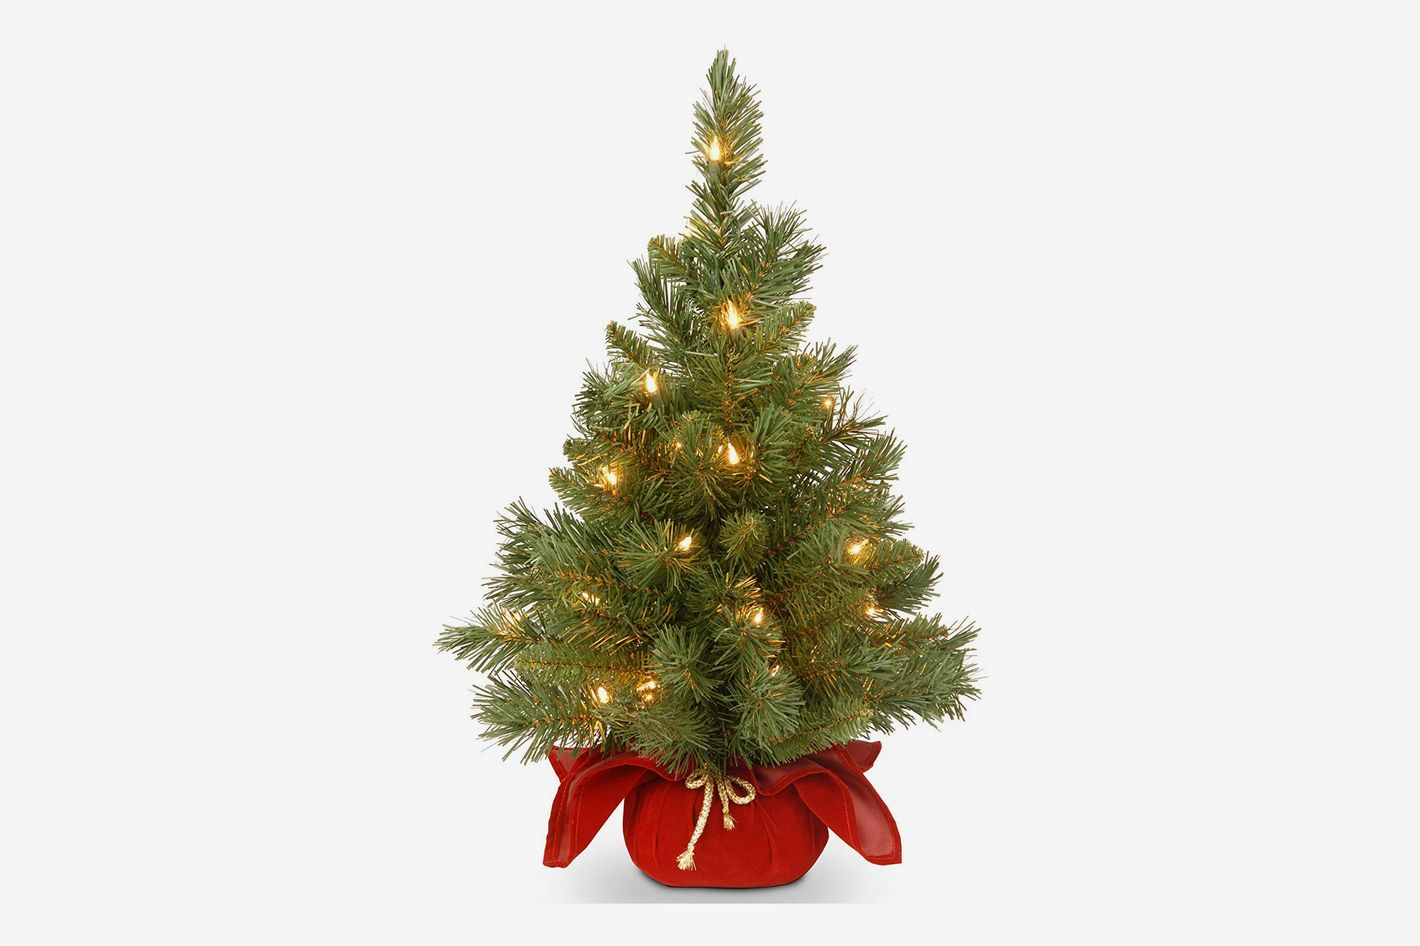 wholesale dealer 3810b 895b6 10 Best Artificial Christmas Trees 2019 | The Strategist ...